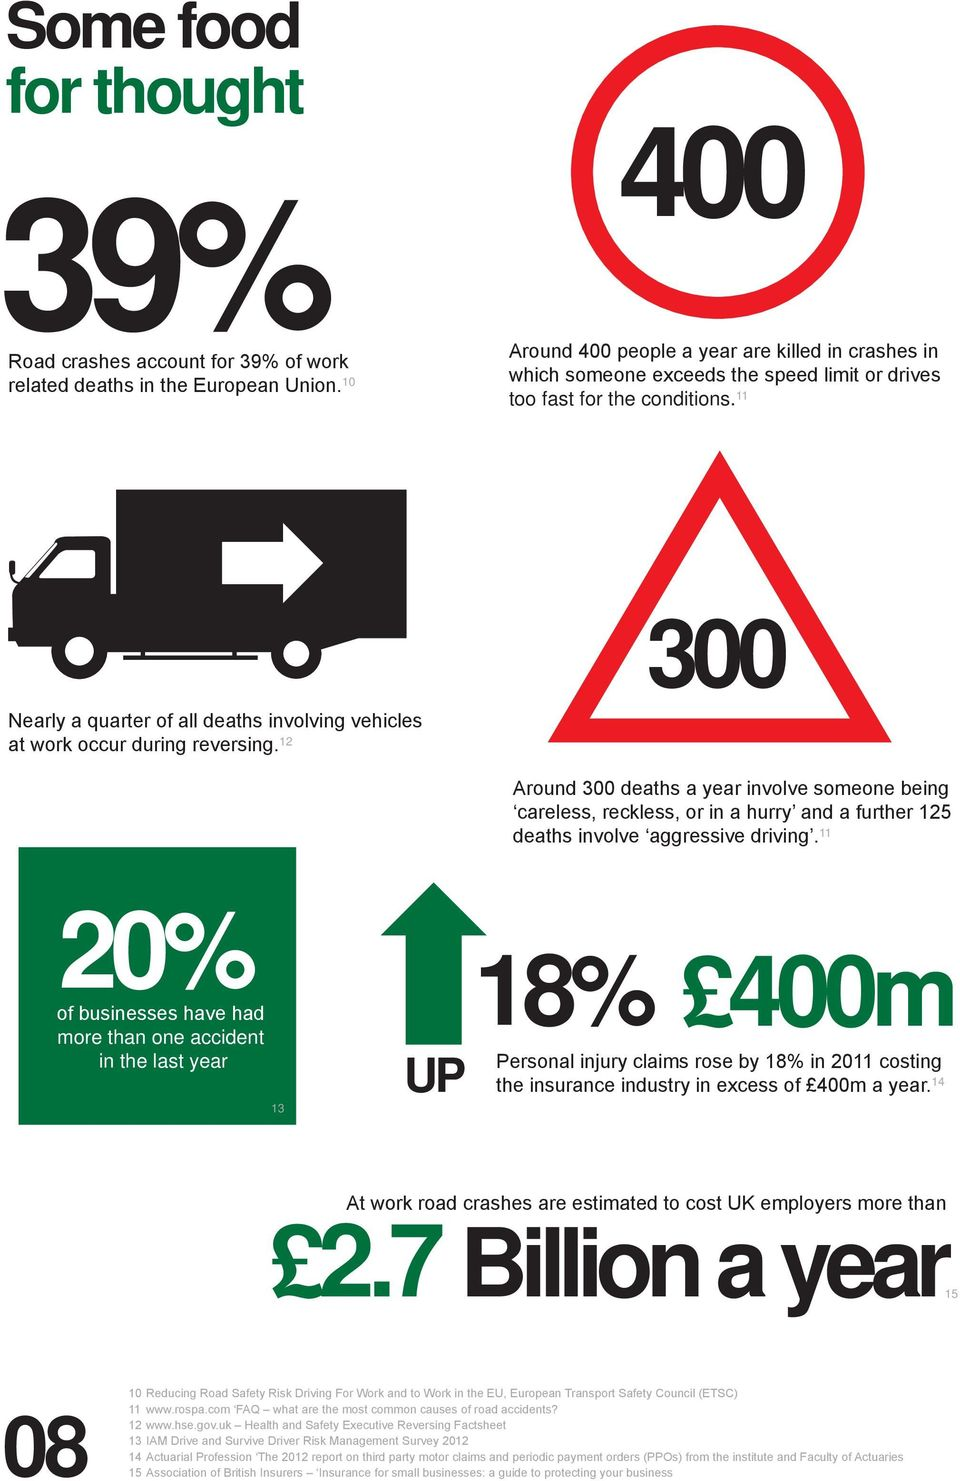 11 300 Nearly a quarter of all deaths involving vehicles at work occur during reversing.